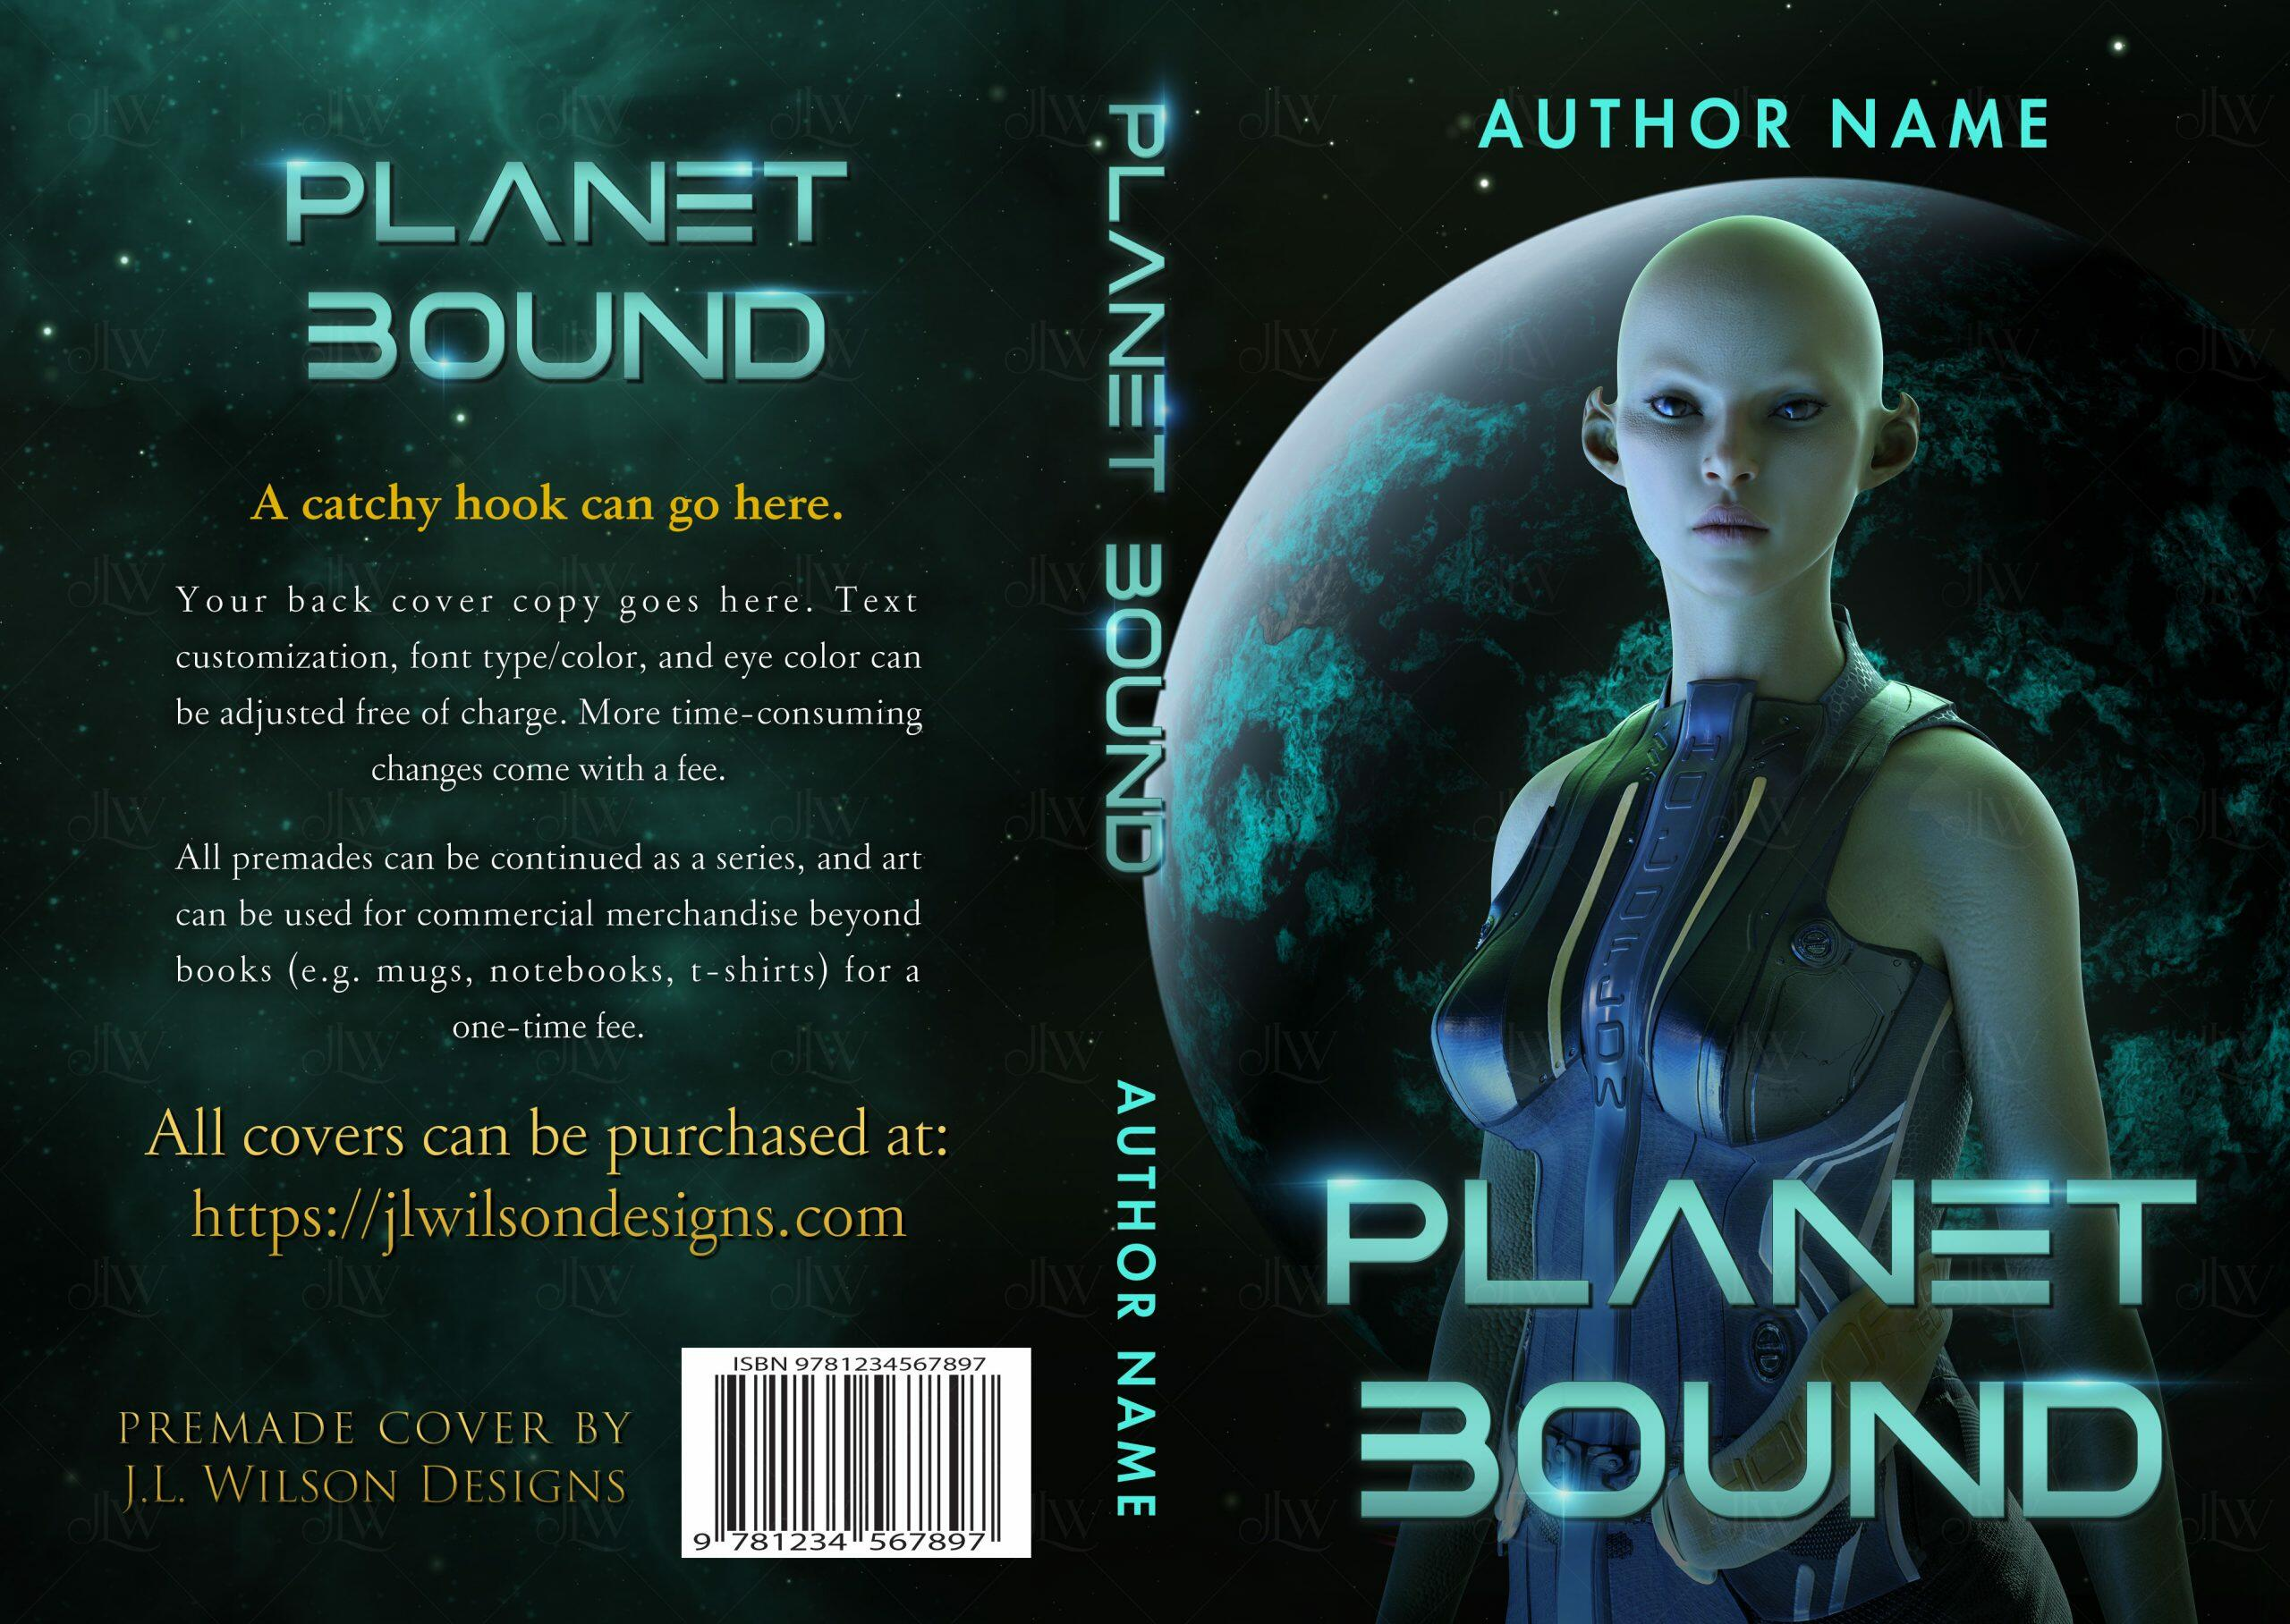 A science fiction book cover with an alien in front of a blue and green planet in space